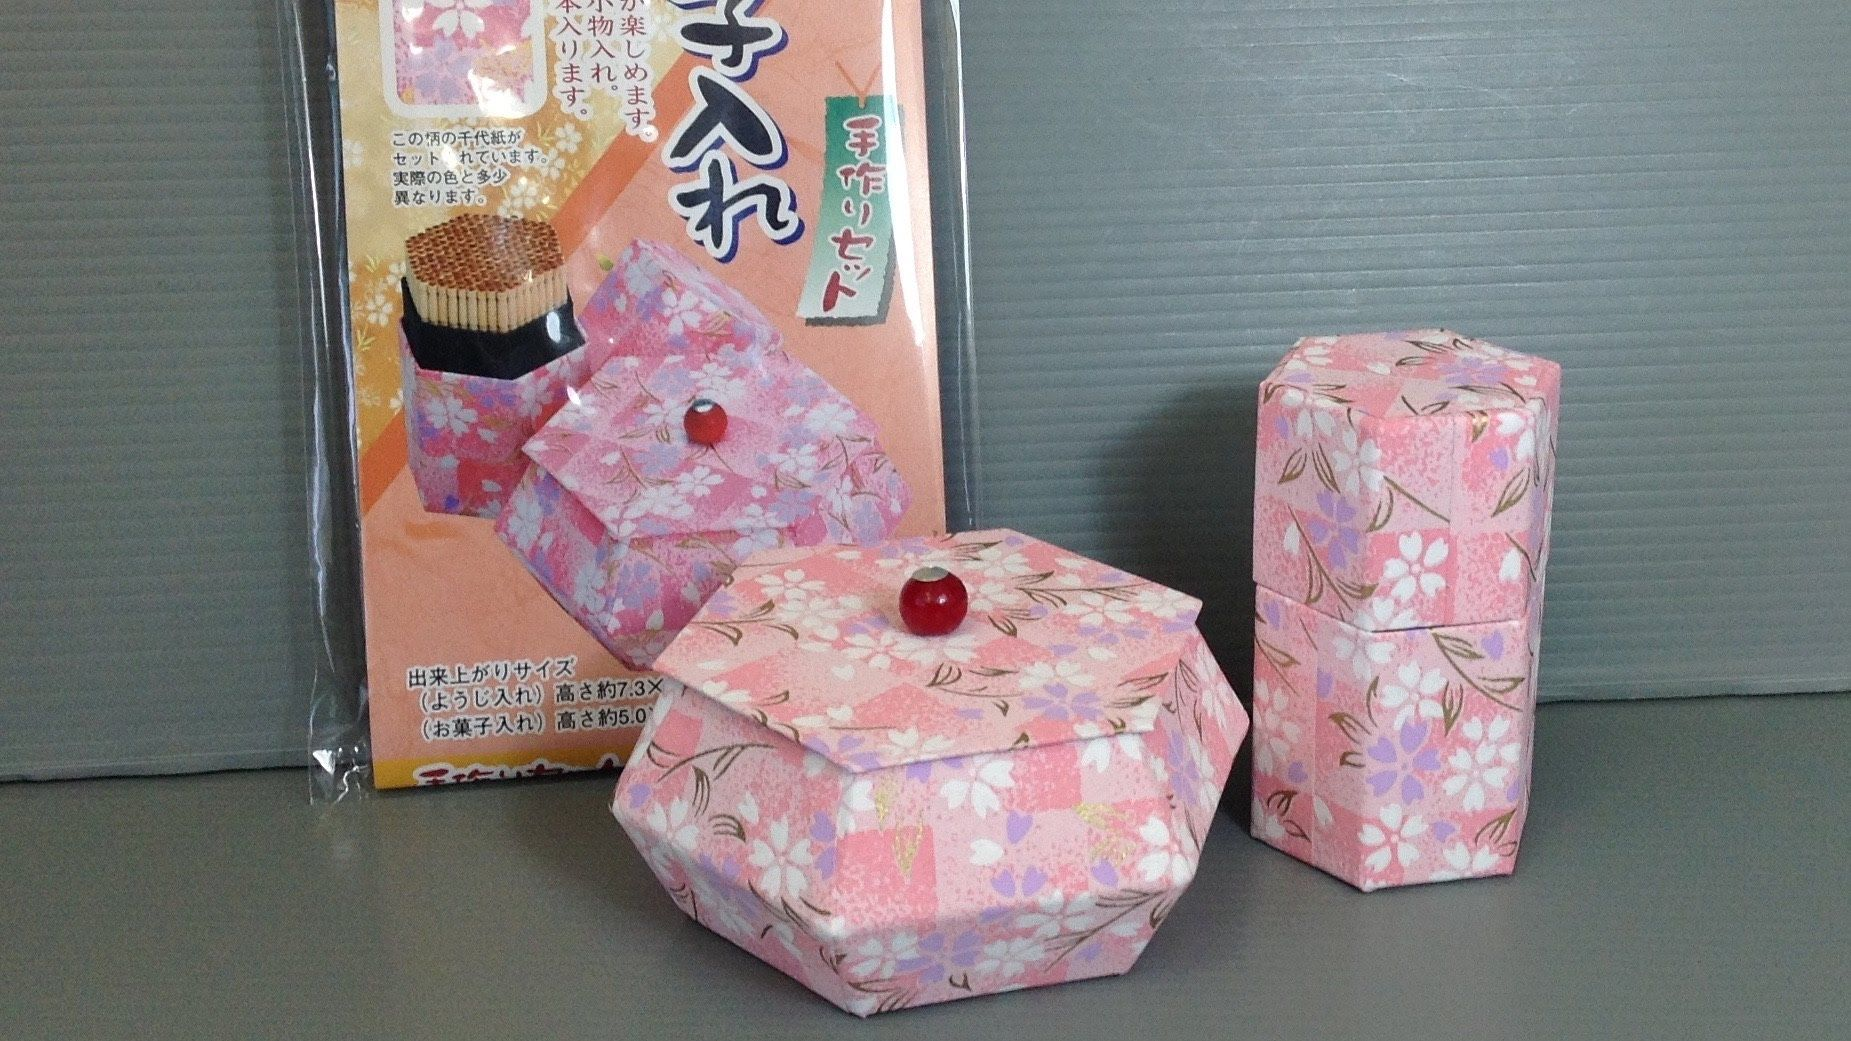 Toyo washi covered toothpick case kit unboxing origami an unboxing or unwrapping of origami paper in japan this kit is made by toyo this is a fun diy kit to make a toothpick holder and a small case jeuxipadfo Images